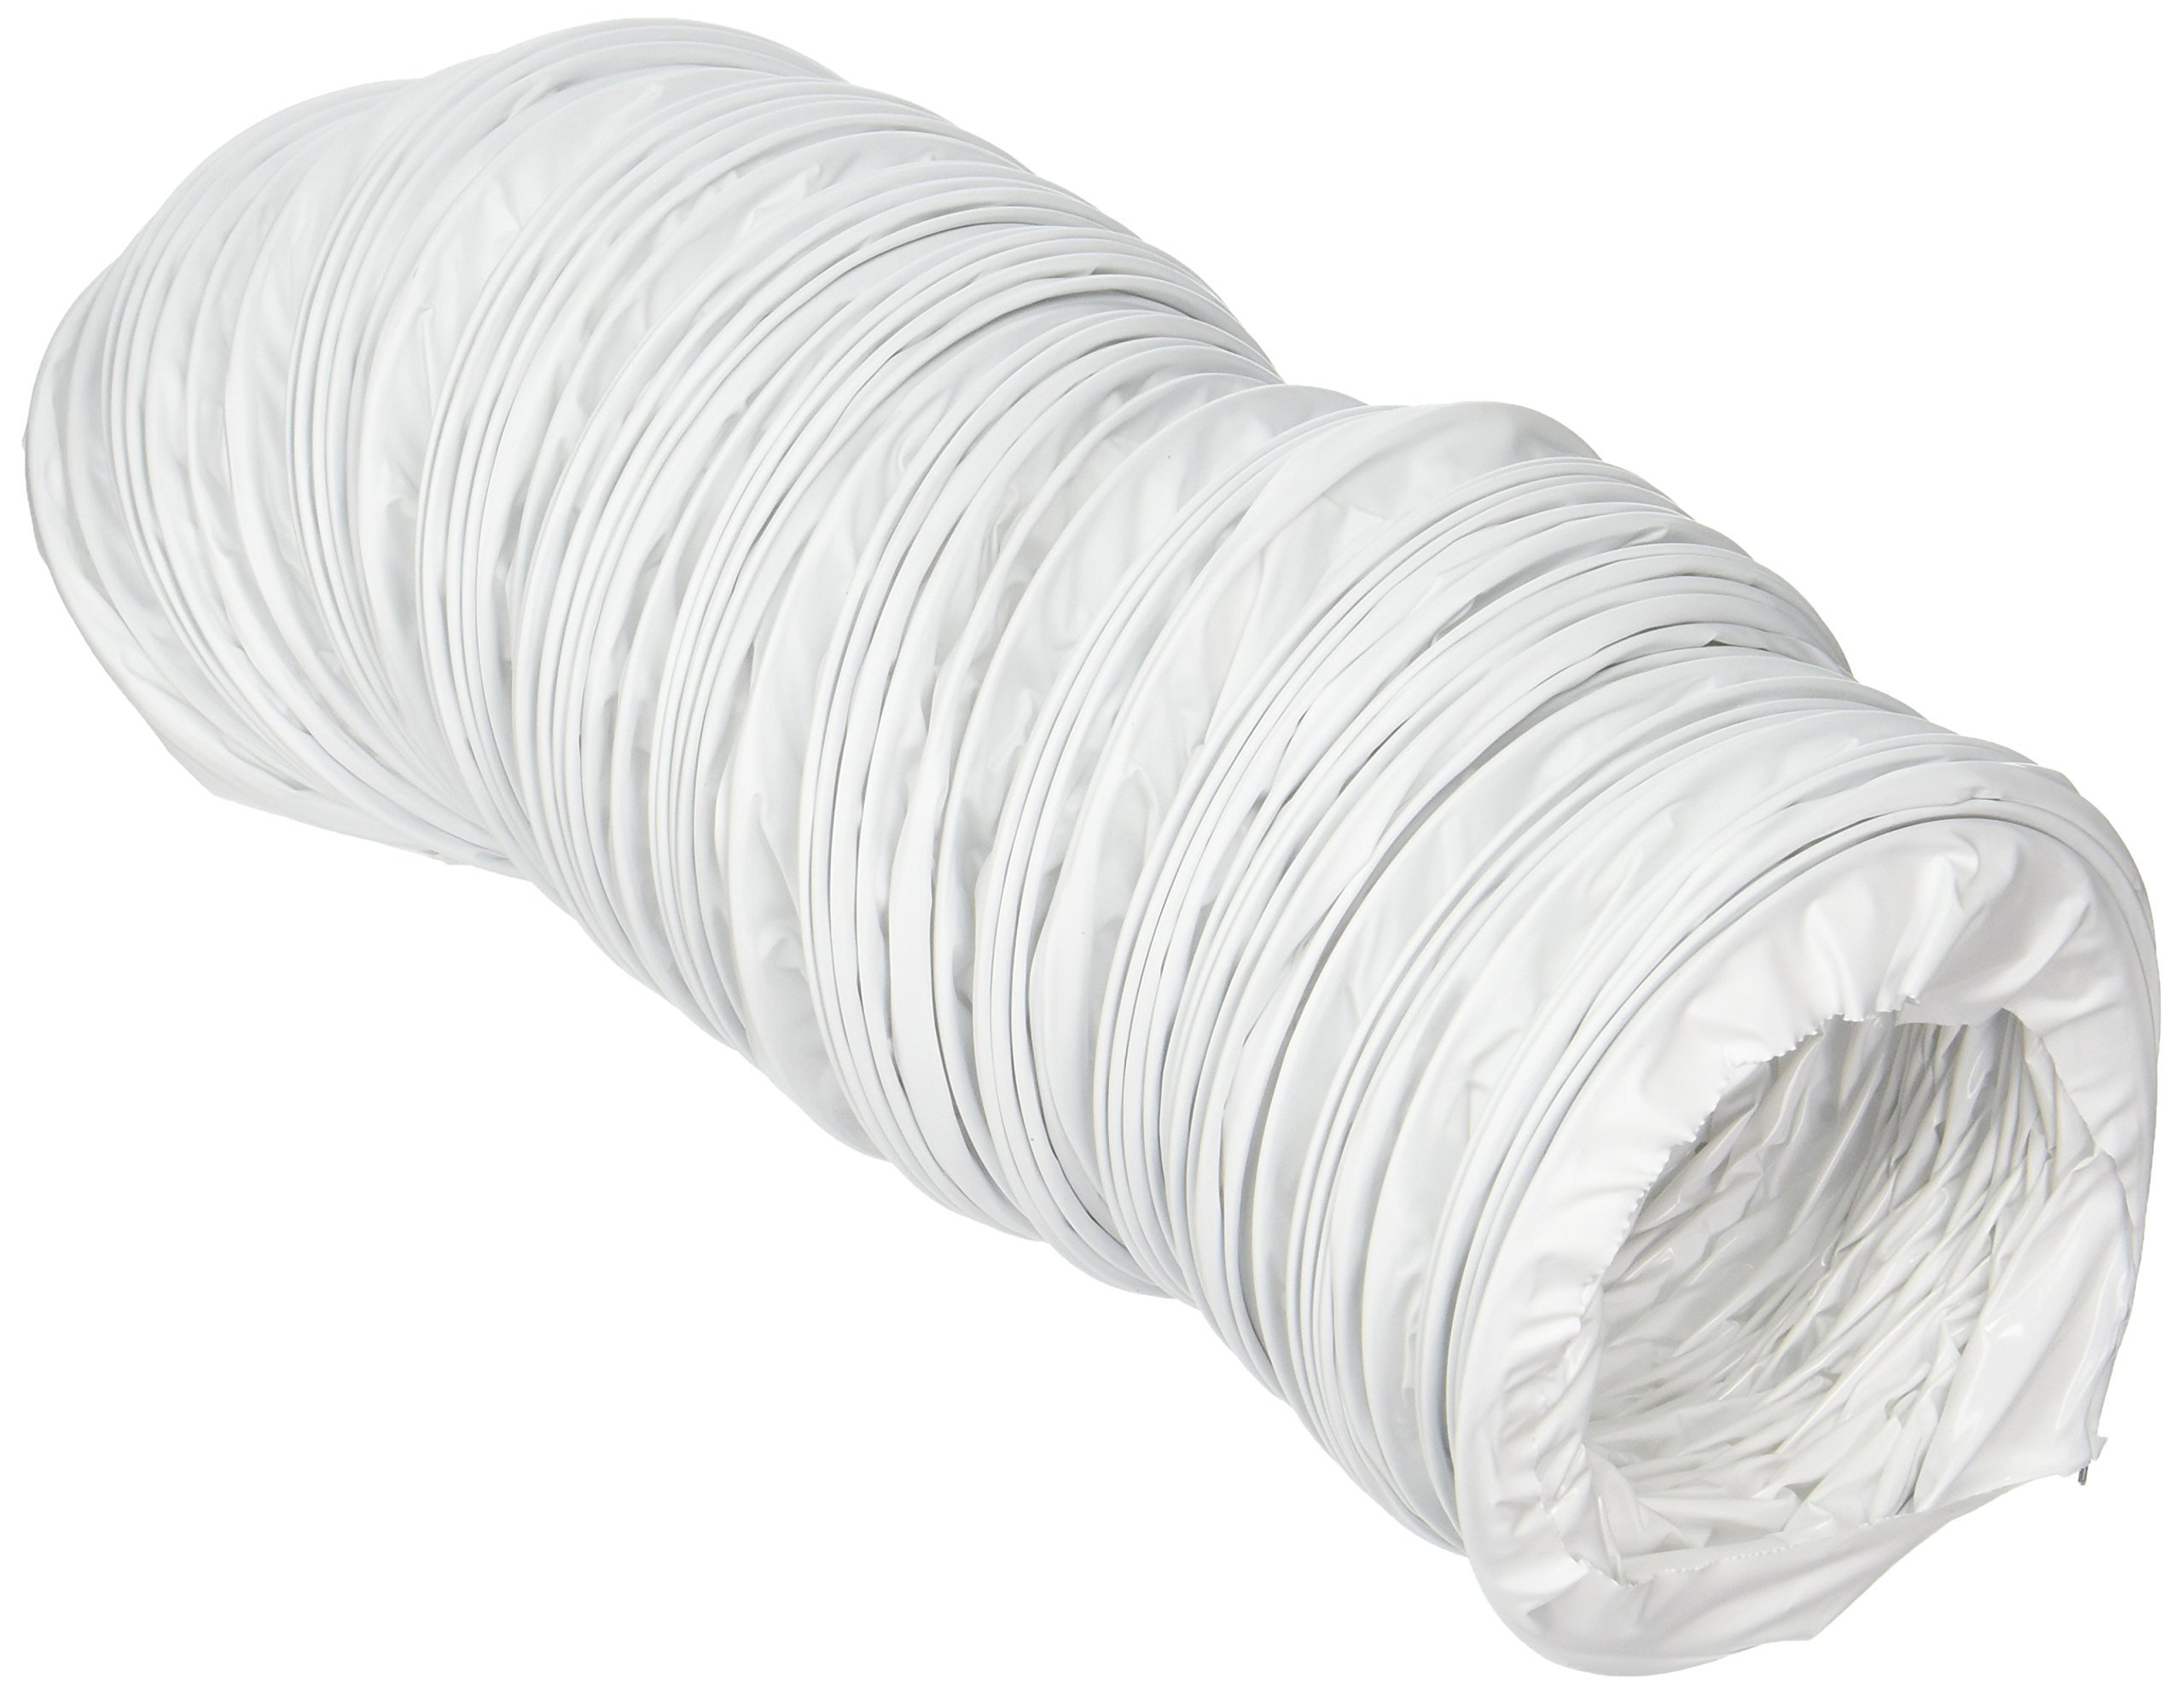 Dryer Vent Insulation Cheap Insulated Dryer Vent Hose Find Insulated Dryer Vent Hose